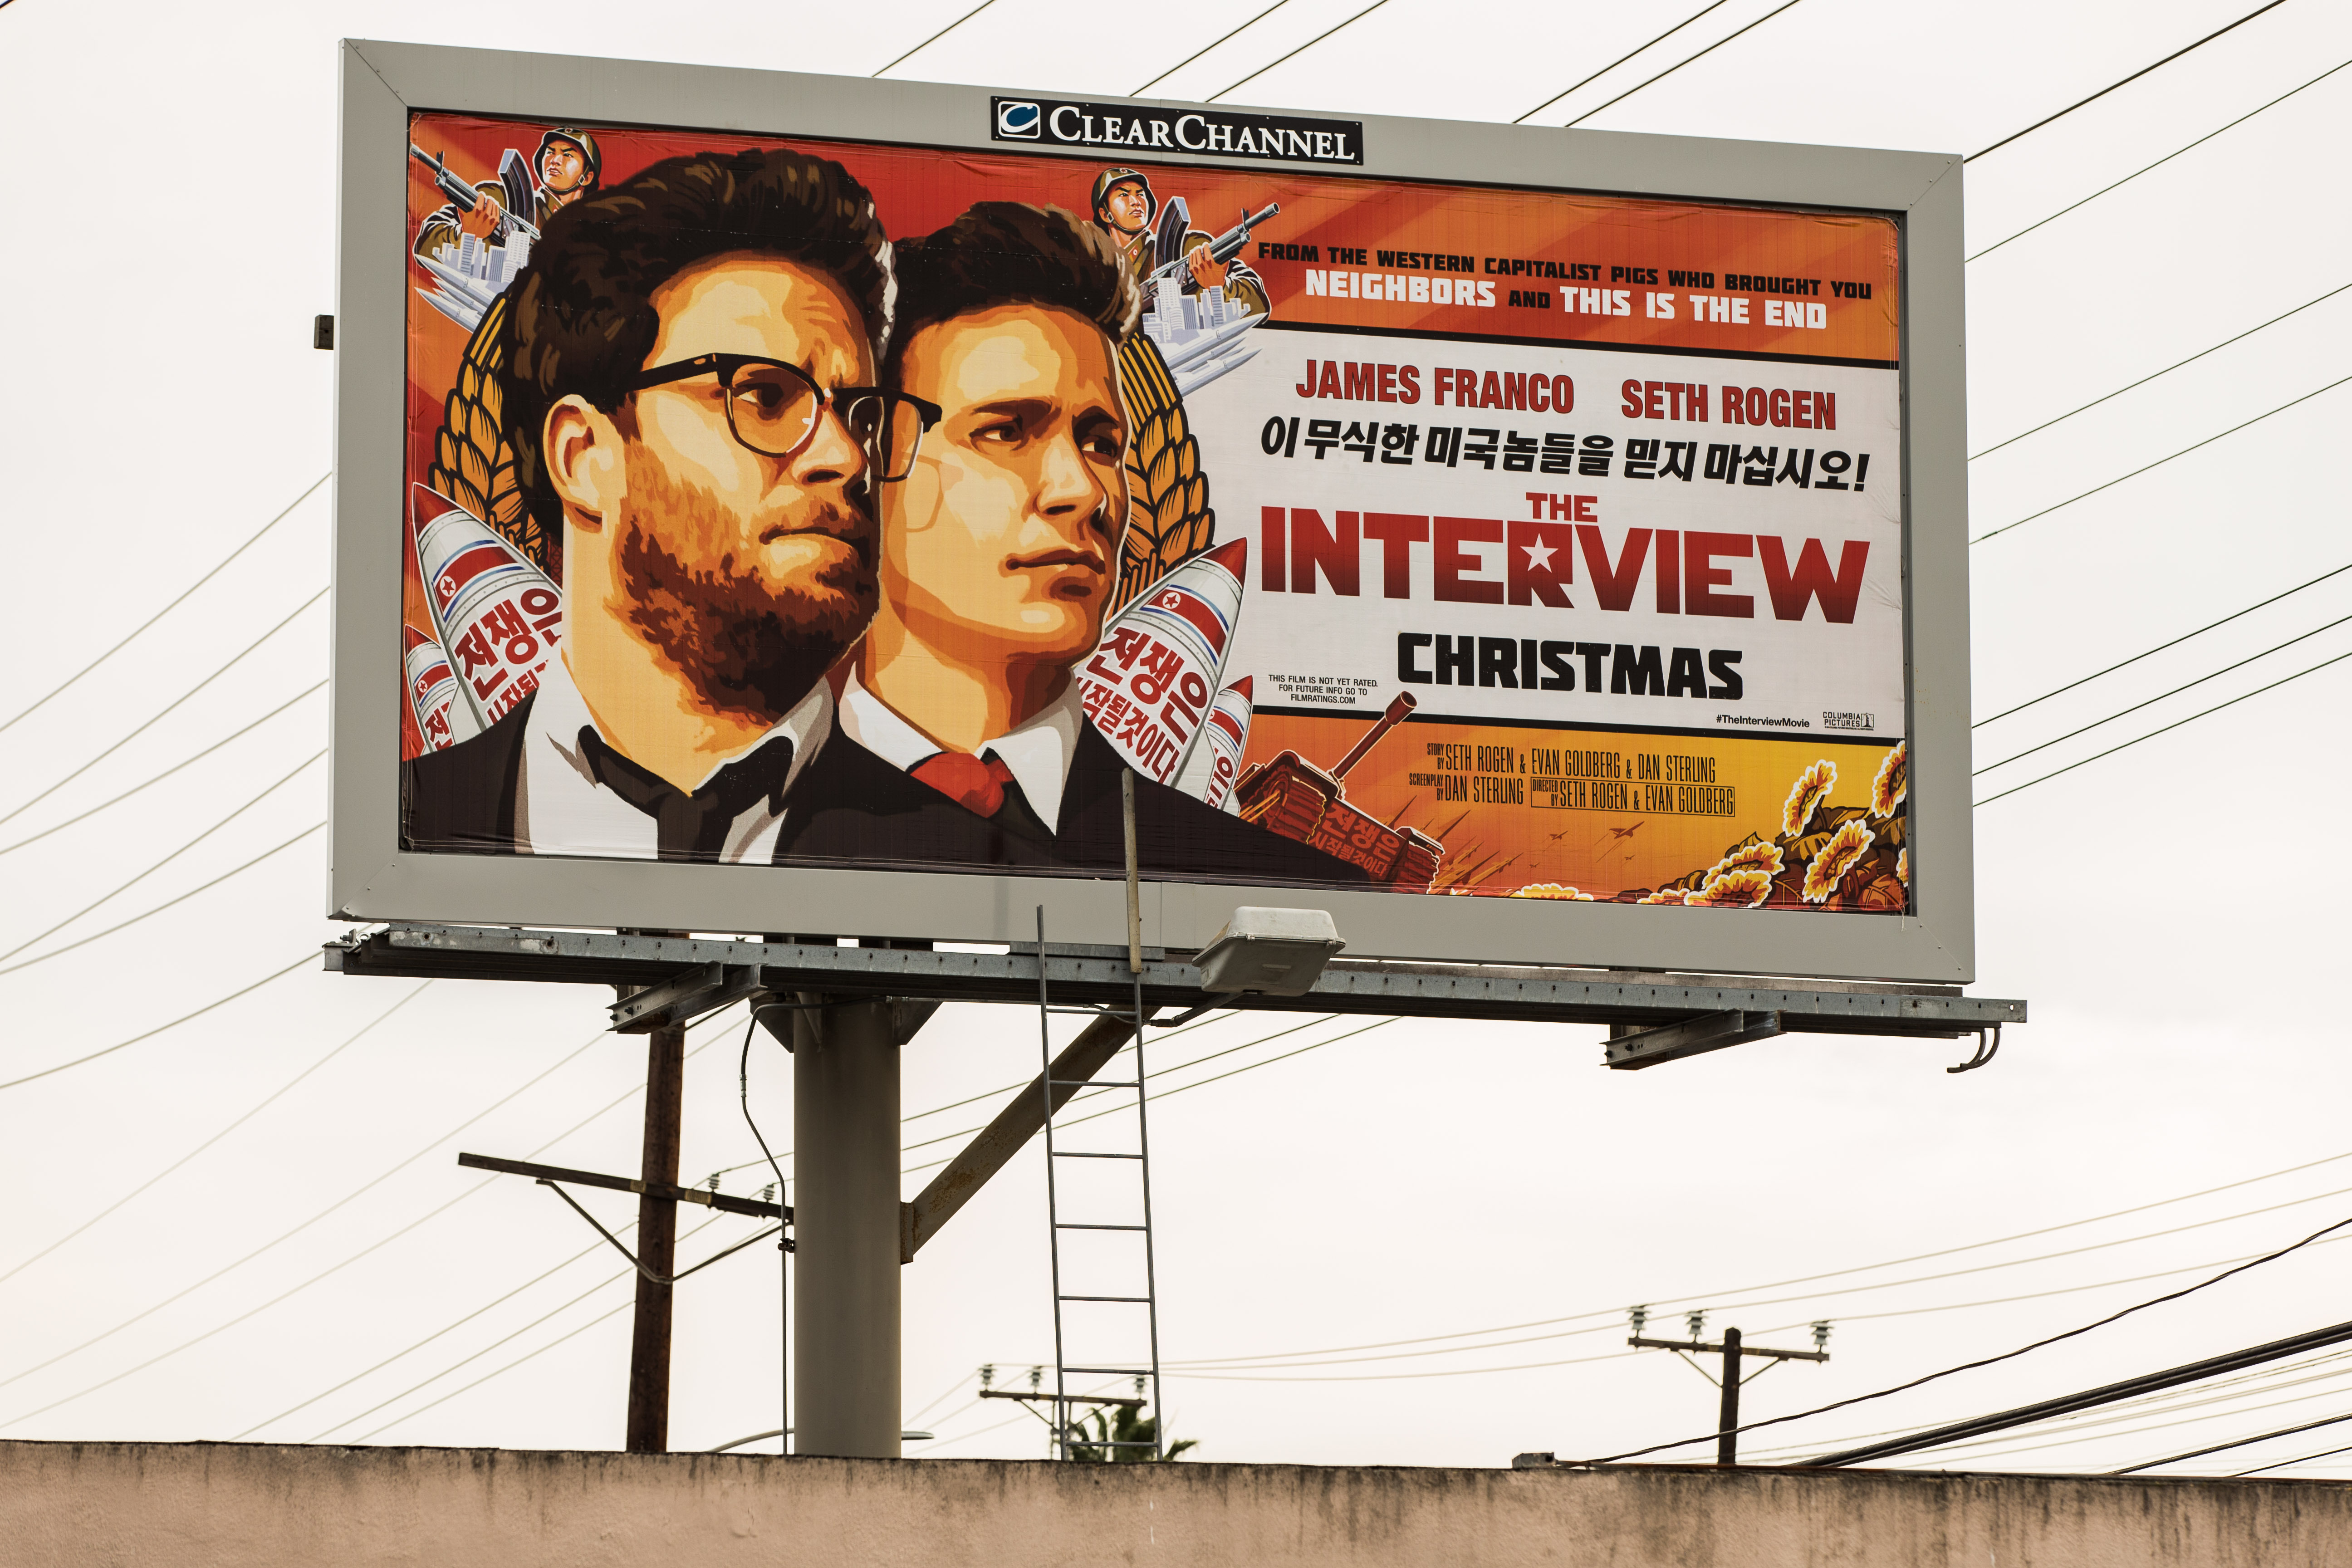 A billboard for the film The Interview is displayed Dec. 19, 2014, in Venice, Calif.